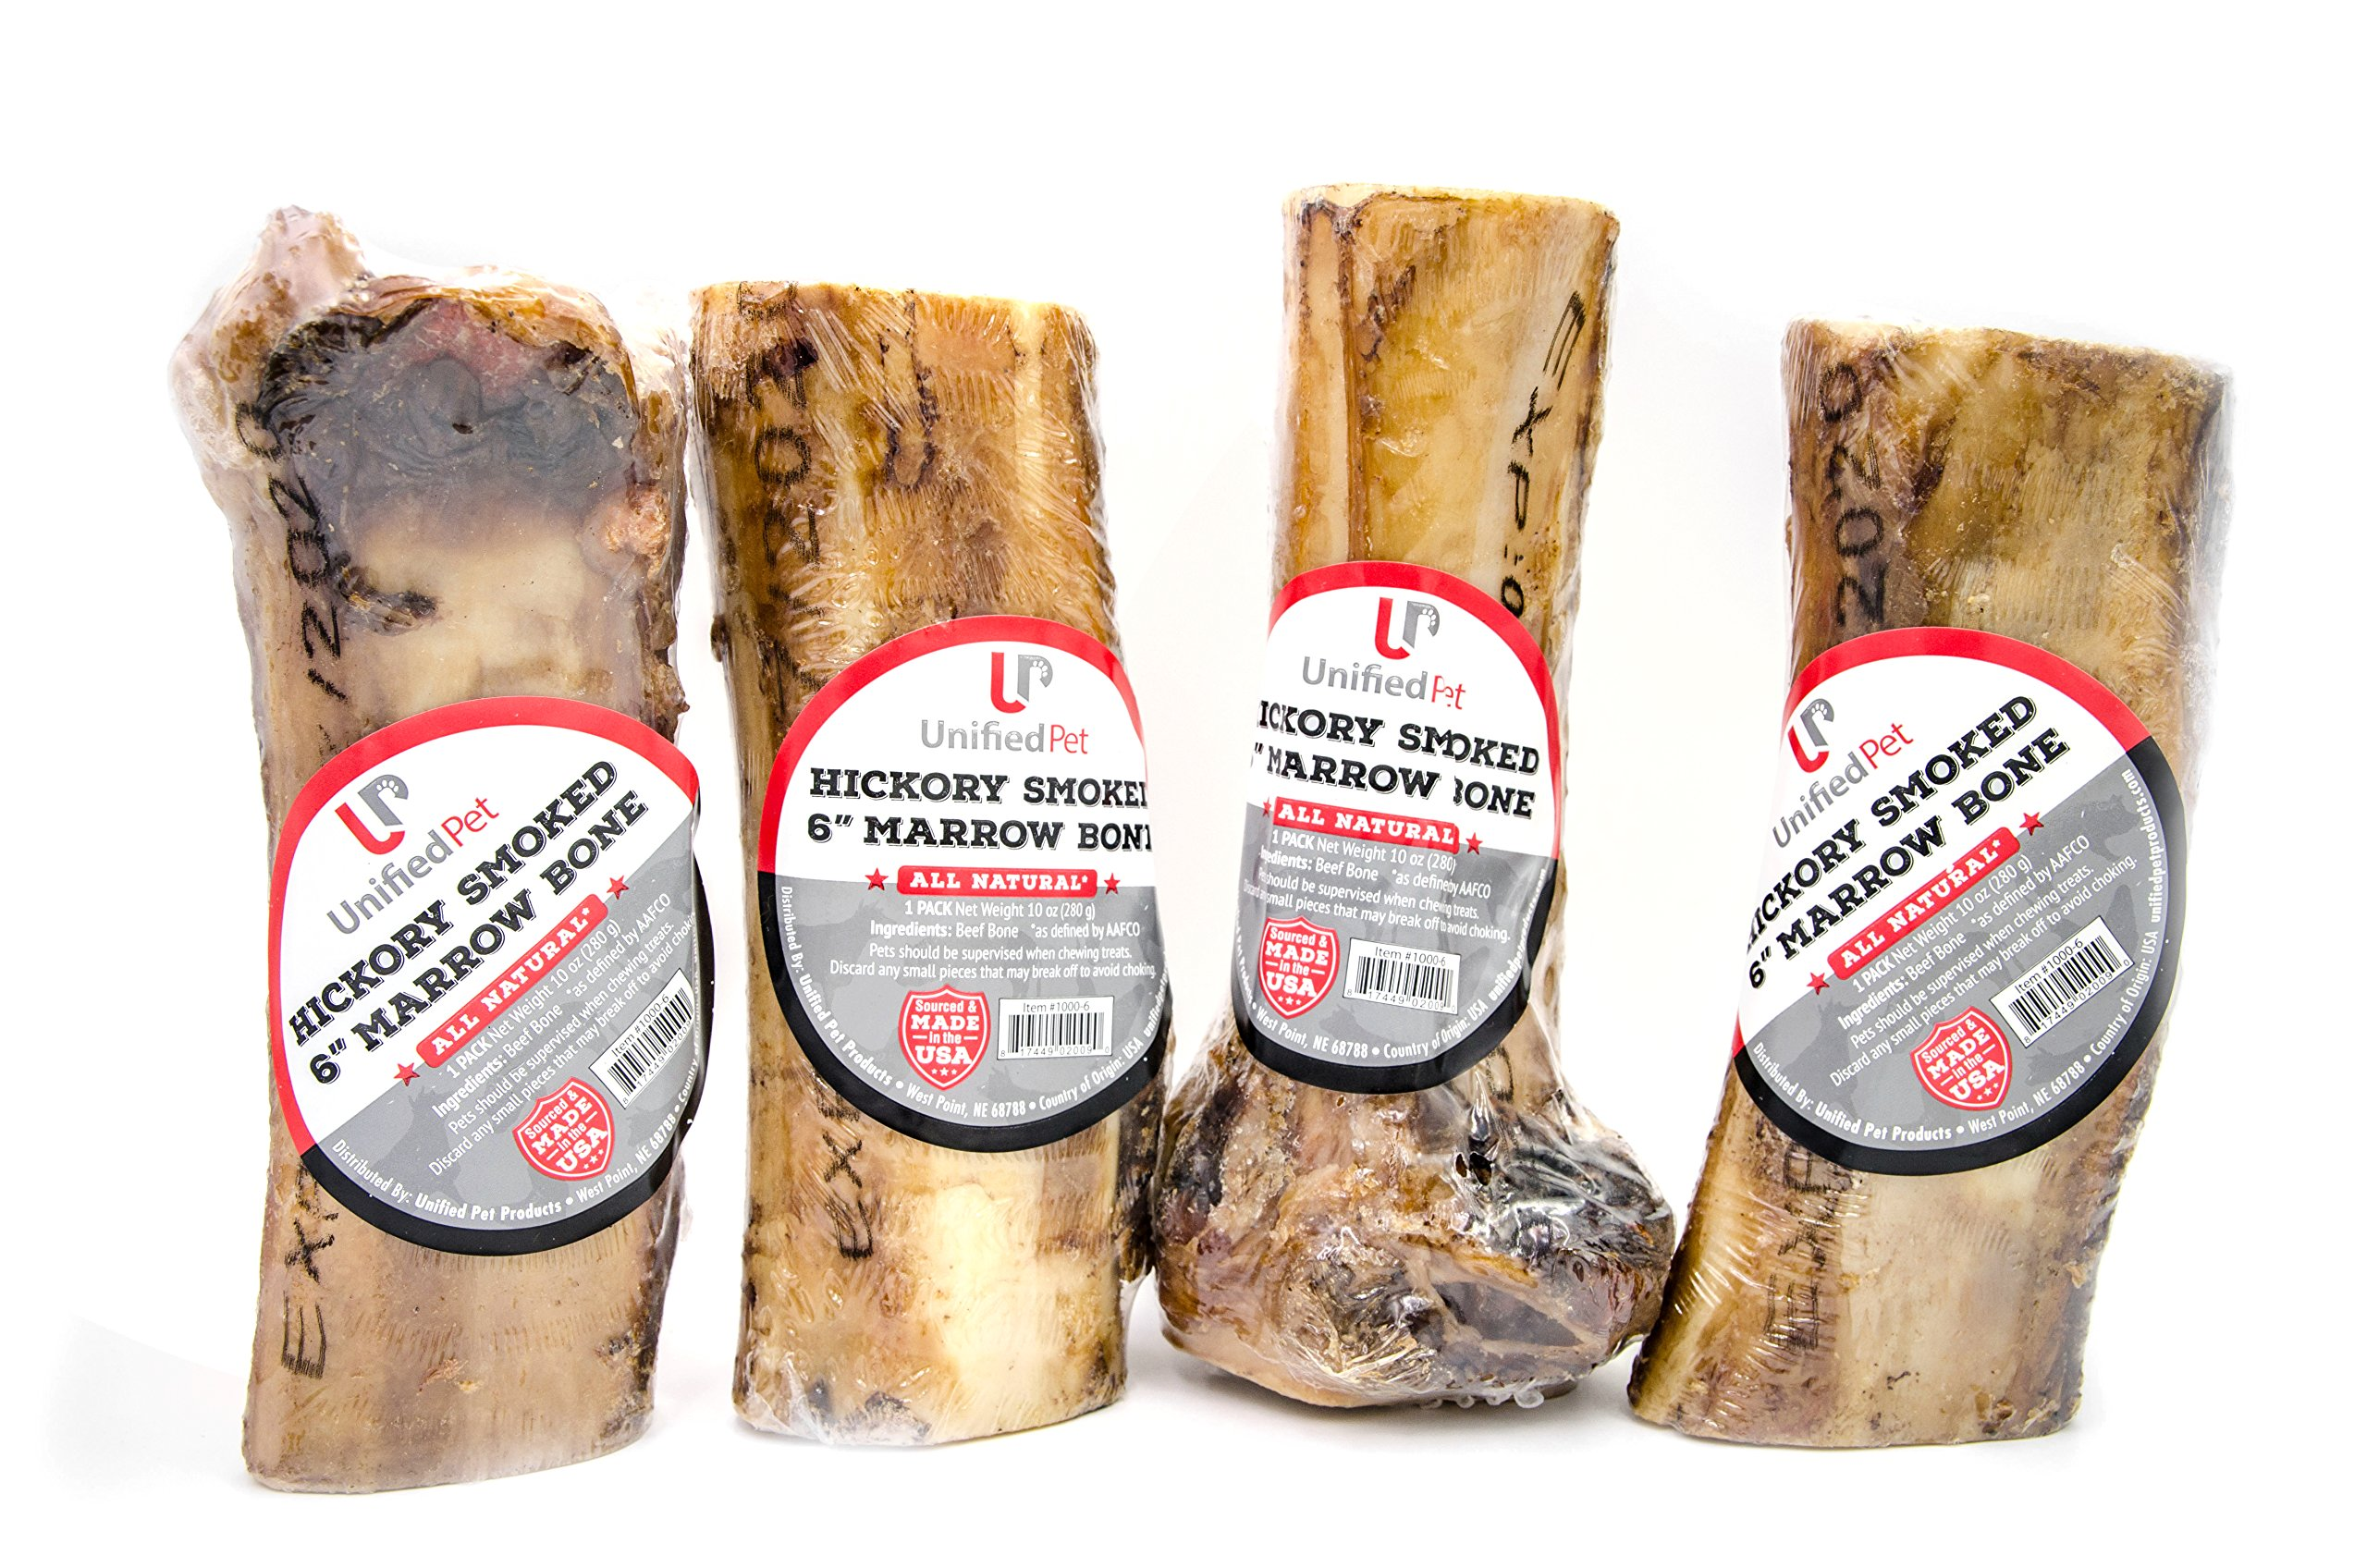 Unified Pet 6'' Marrow Bone-Hickory Smoked, Small, 4 Pack